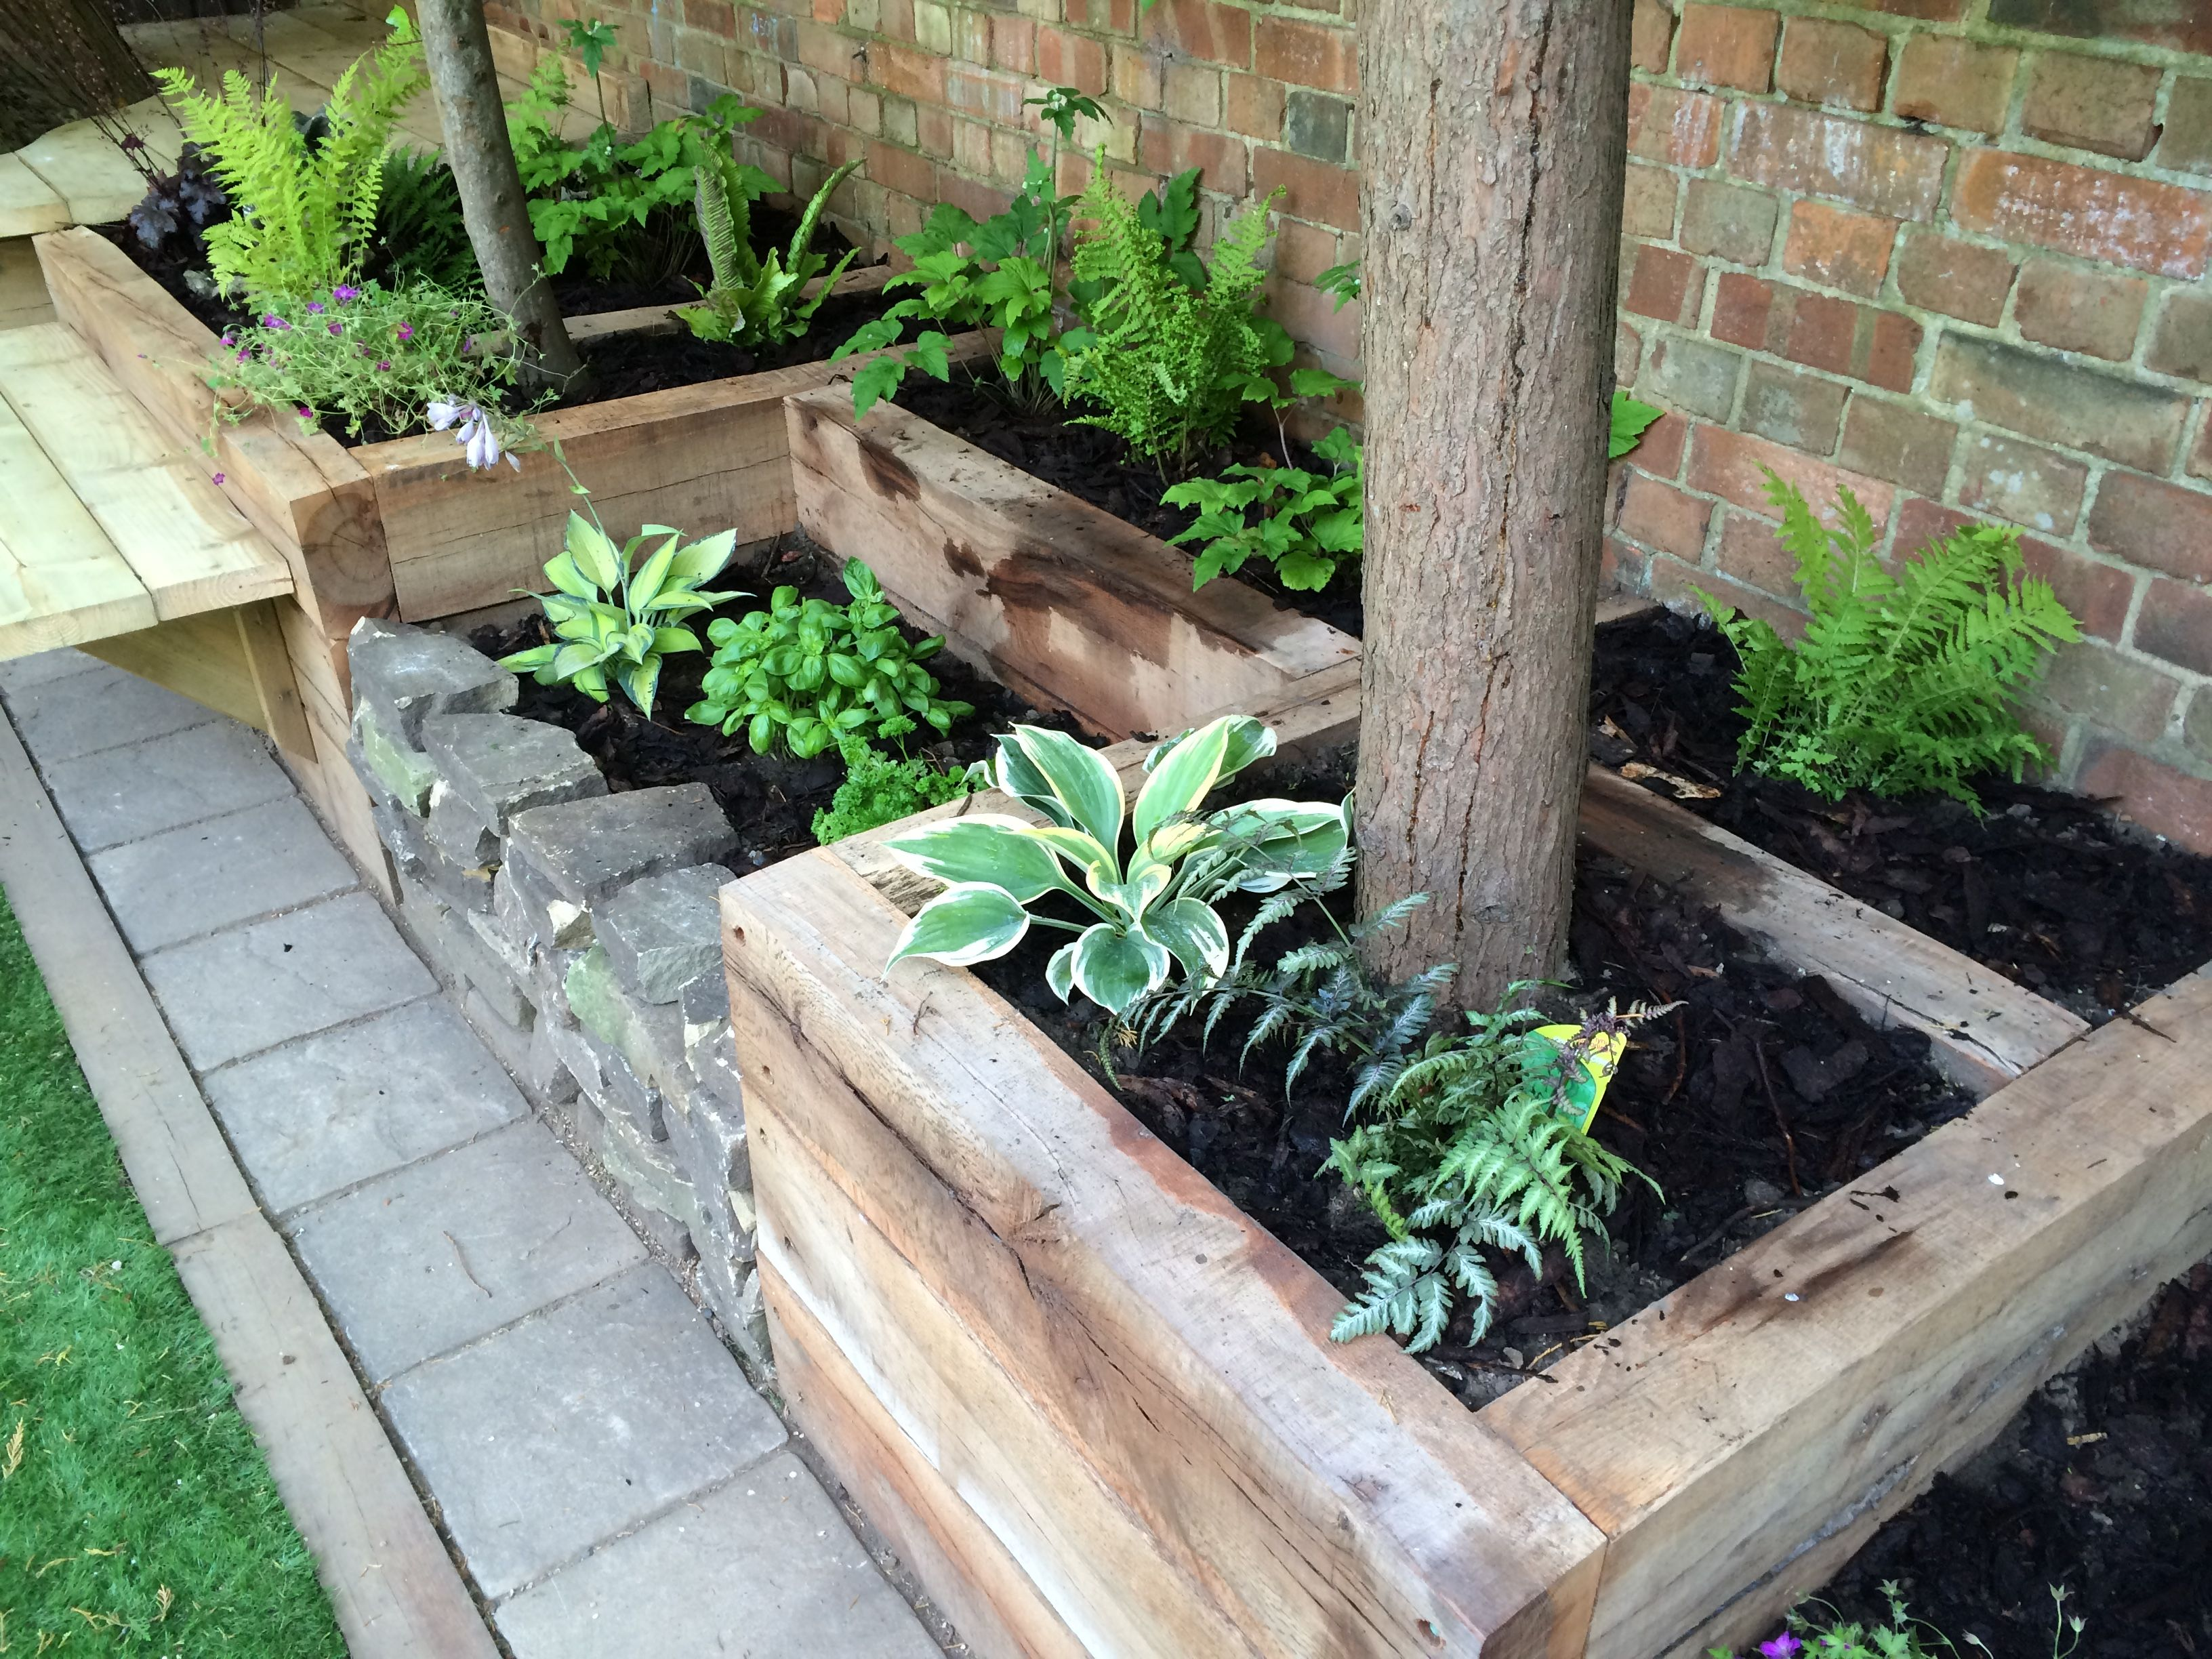 Rail sleeper/natural stone planters